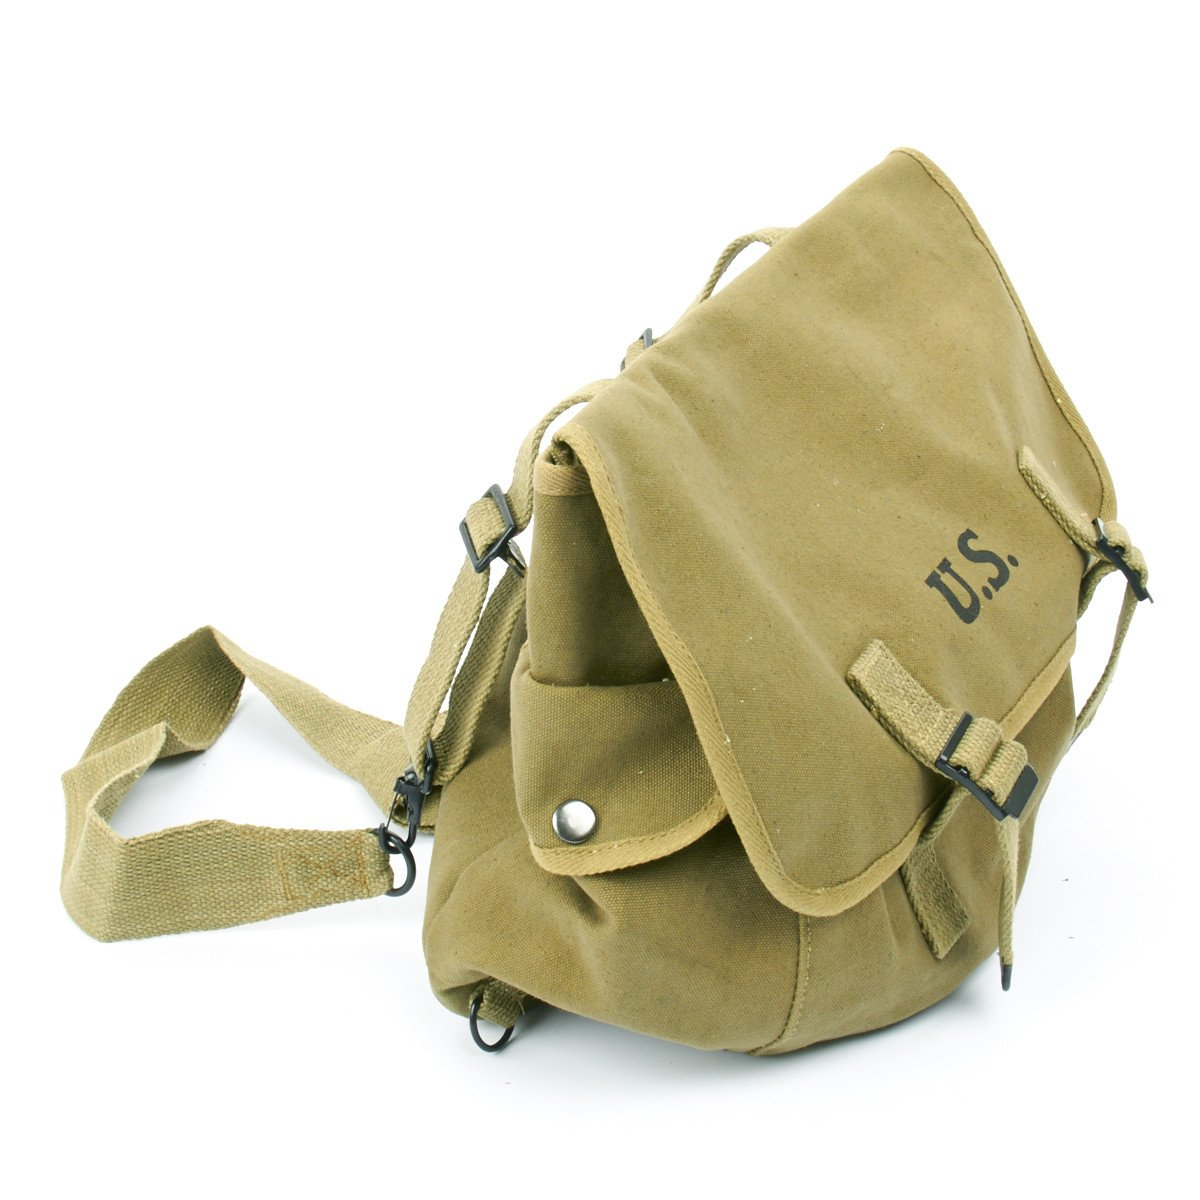 U S  WWII M1936 Musette Bag with Shoulder Strap